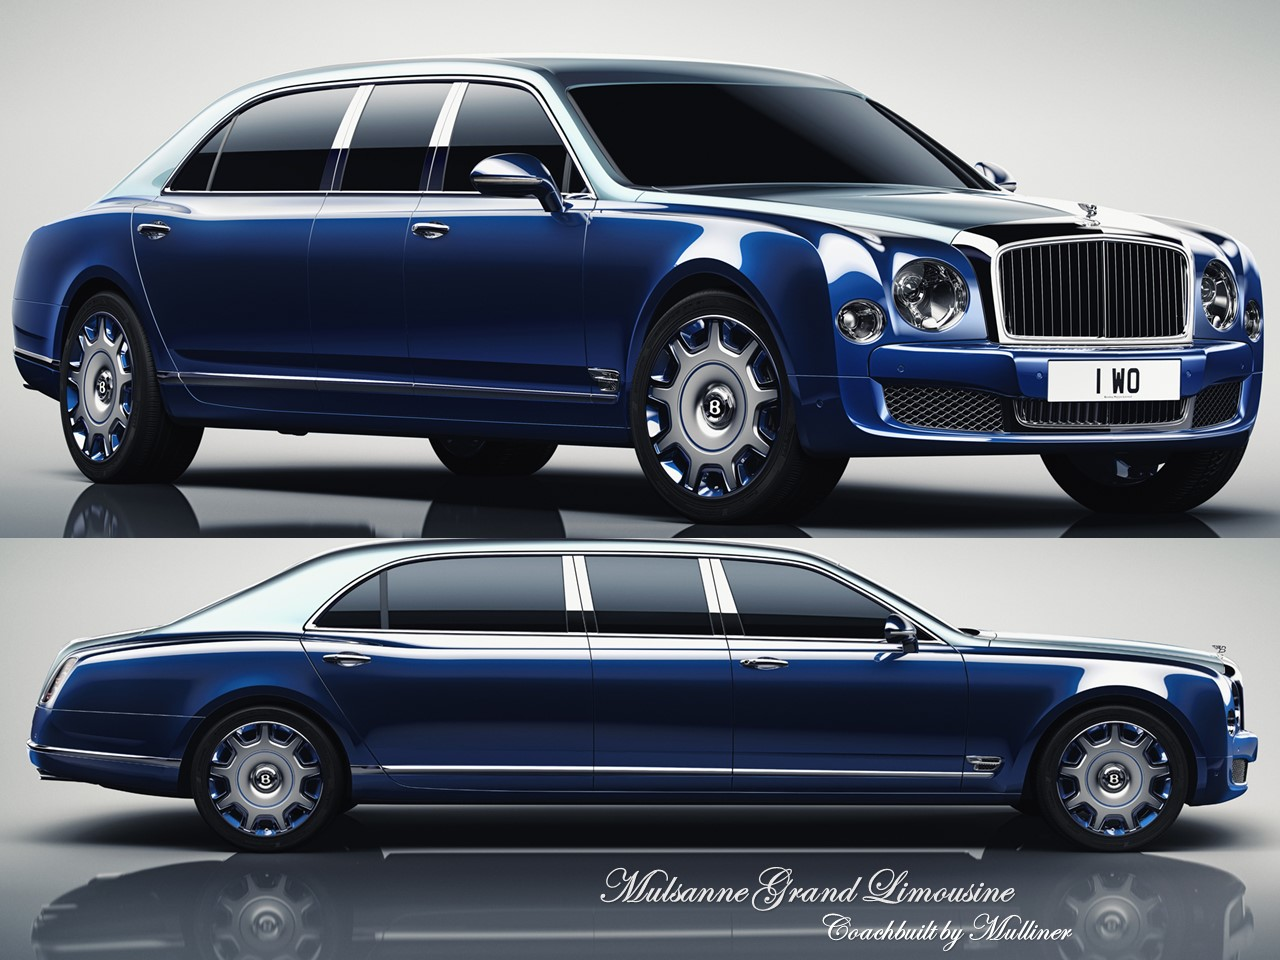 Limousine: Bentley Mulsanne Grand Limousine By Mulliner